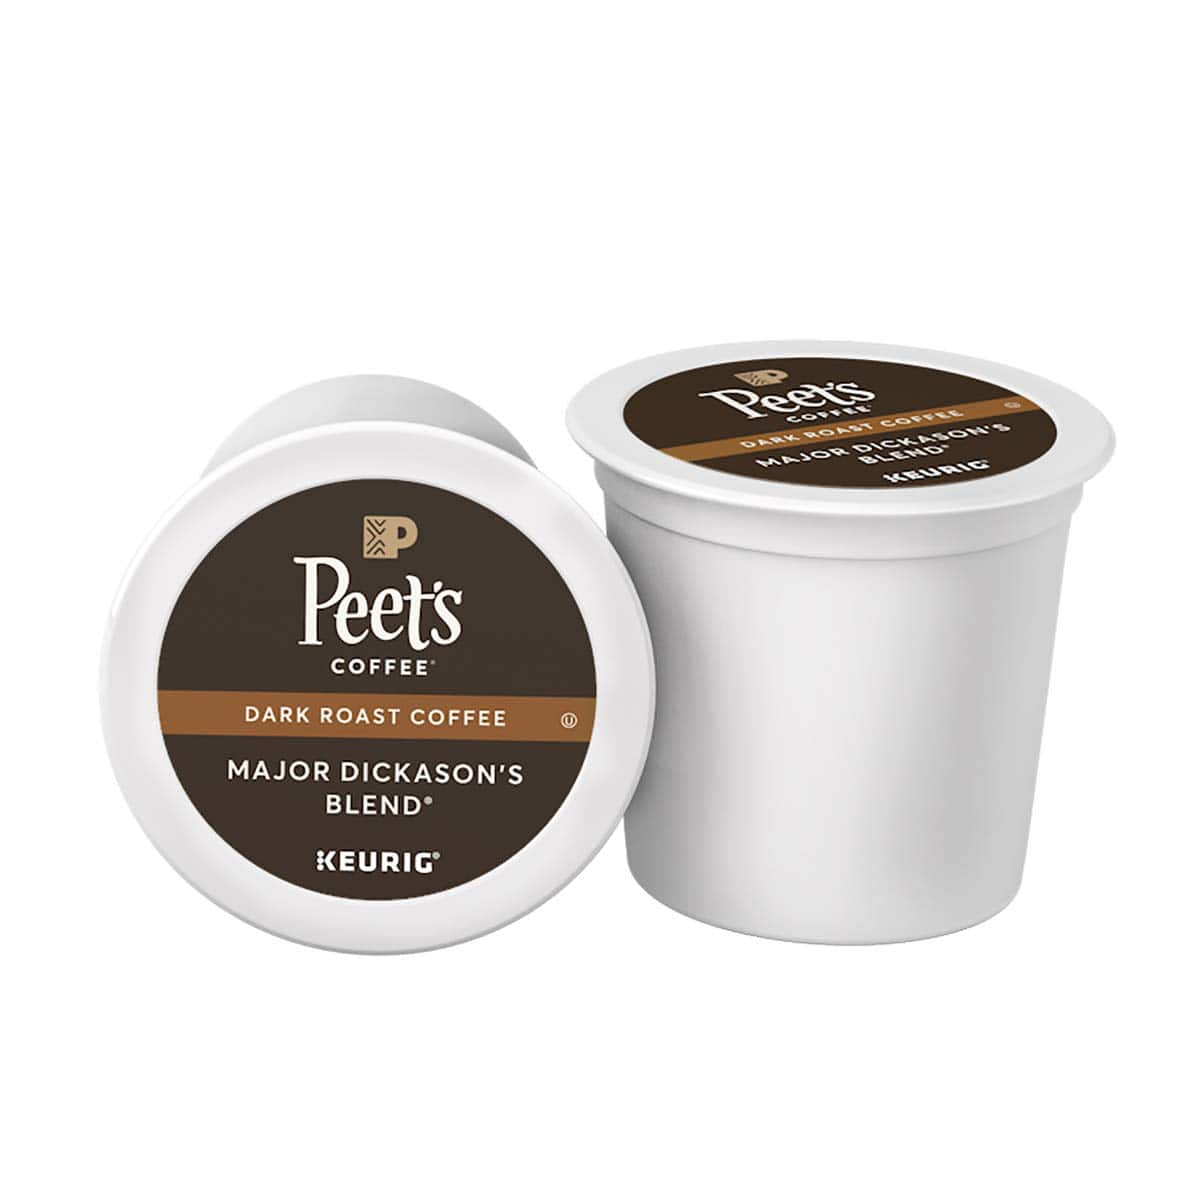 75-Count Peet's Coffee Major Dickason's Blend K-Cups (Dark Roast)